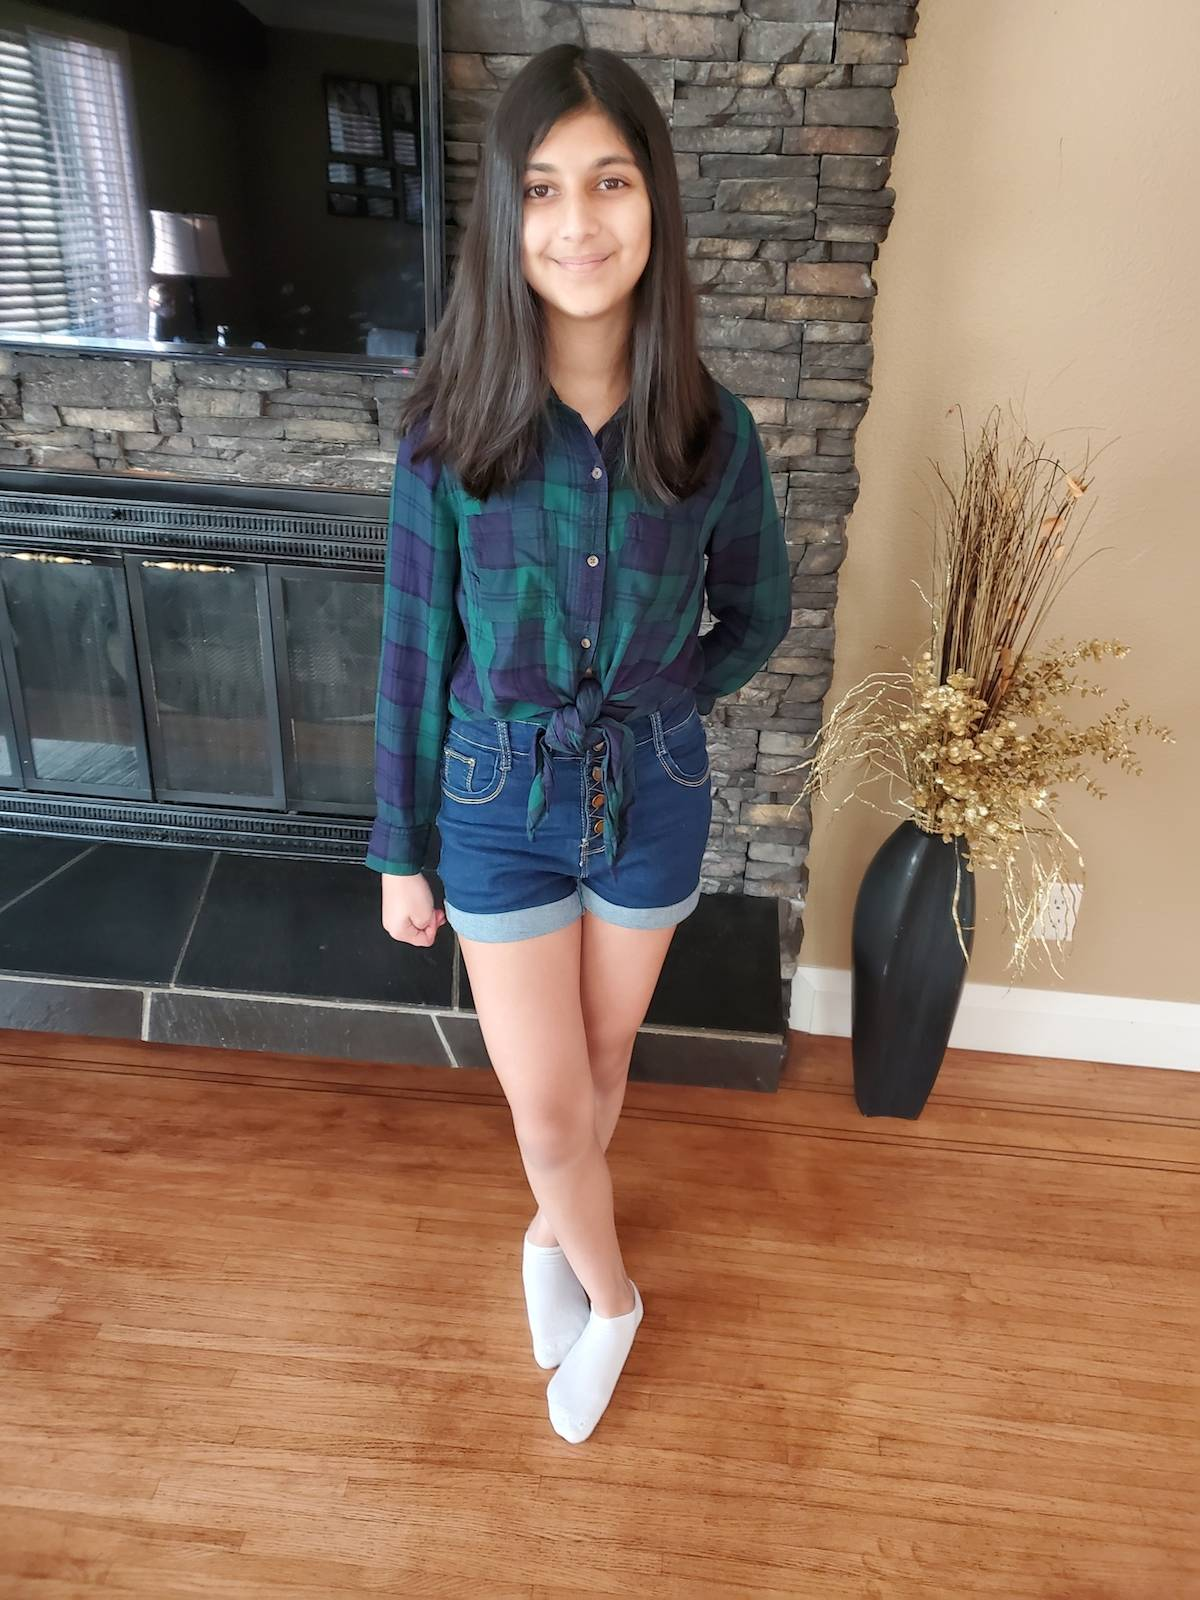 """Surrey resident Sia Sidhu, 13, has been raising money for BC Children's Hospital in a variety of ways. This year's """"Team Sia"""" fundraiser involves a raffle of more than 60 prizes donated by sponsors she has approached. (submitted photo)"""